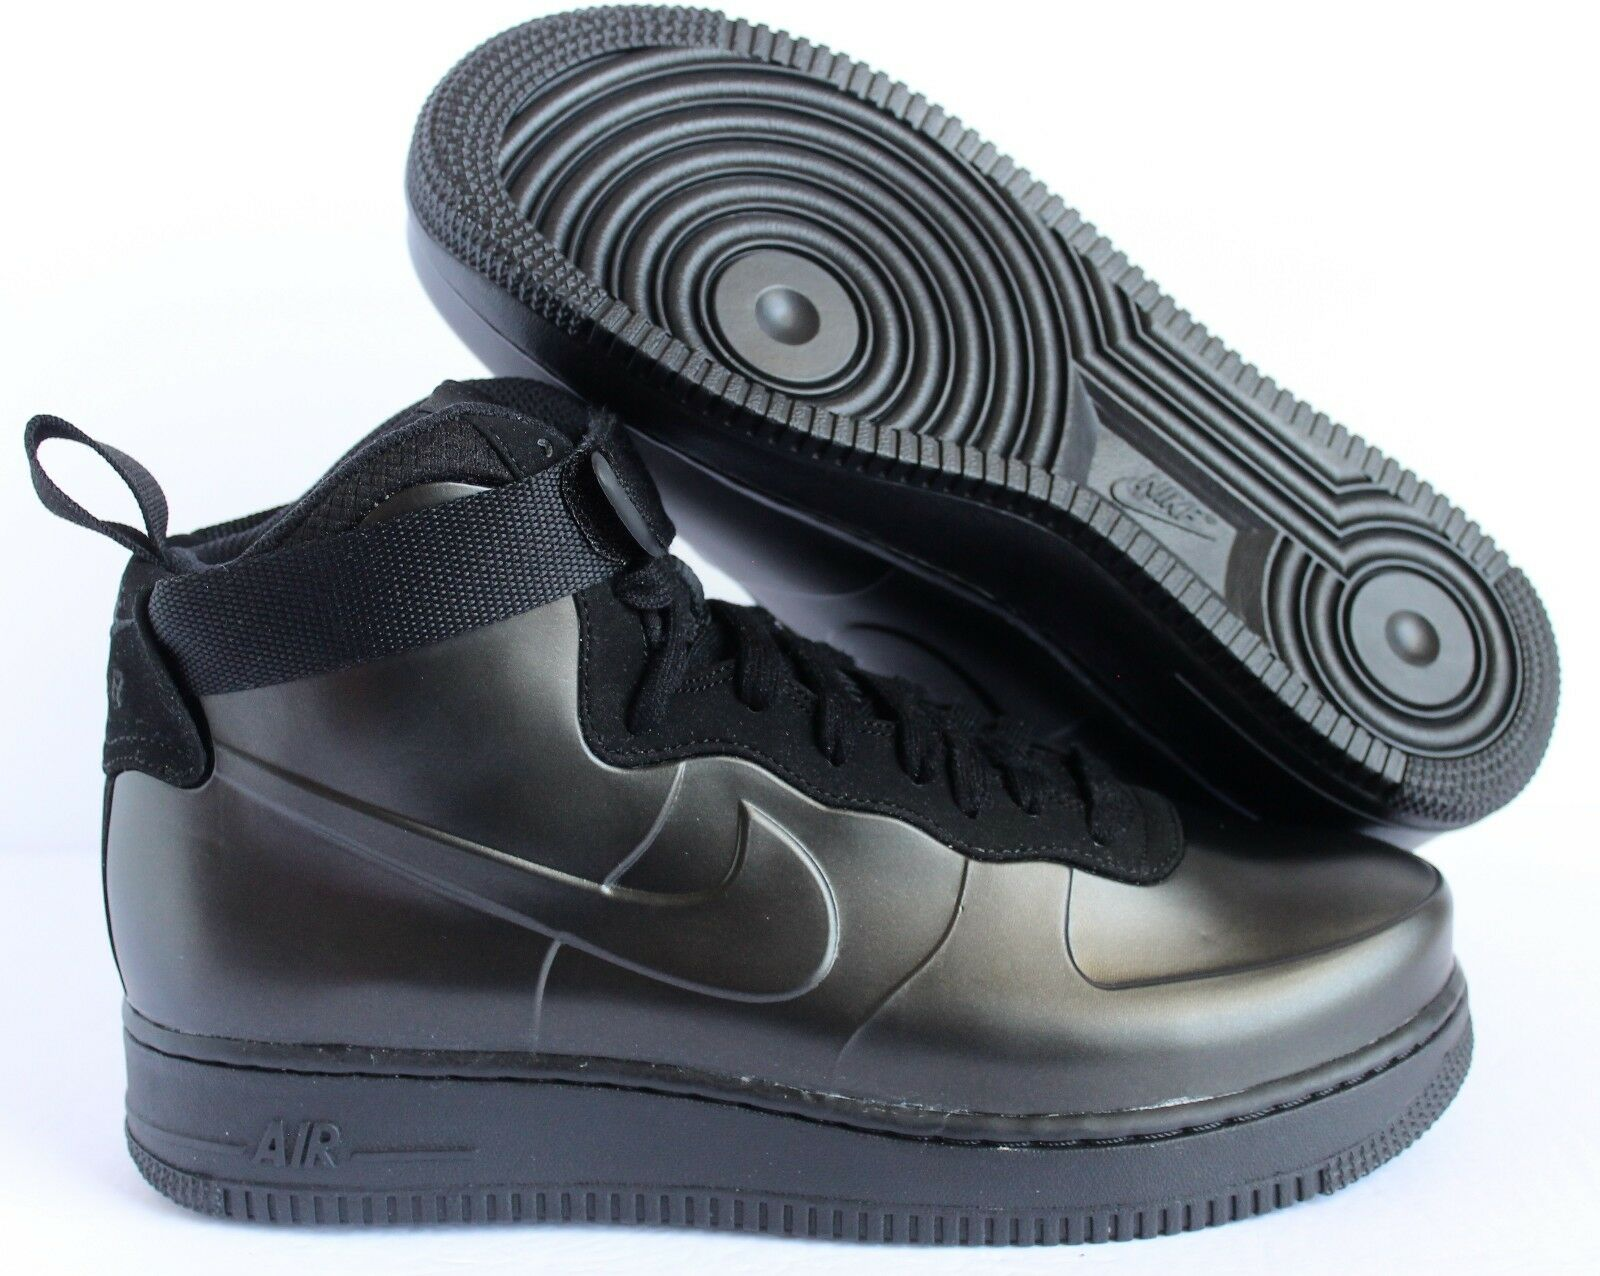 NIKE AIR FORCE 1 FOAMPOSITE CUP